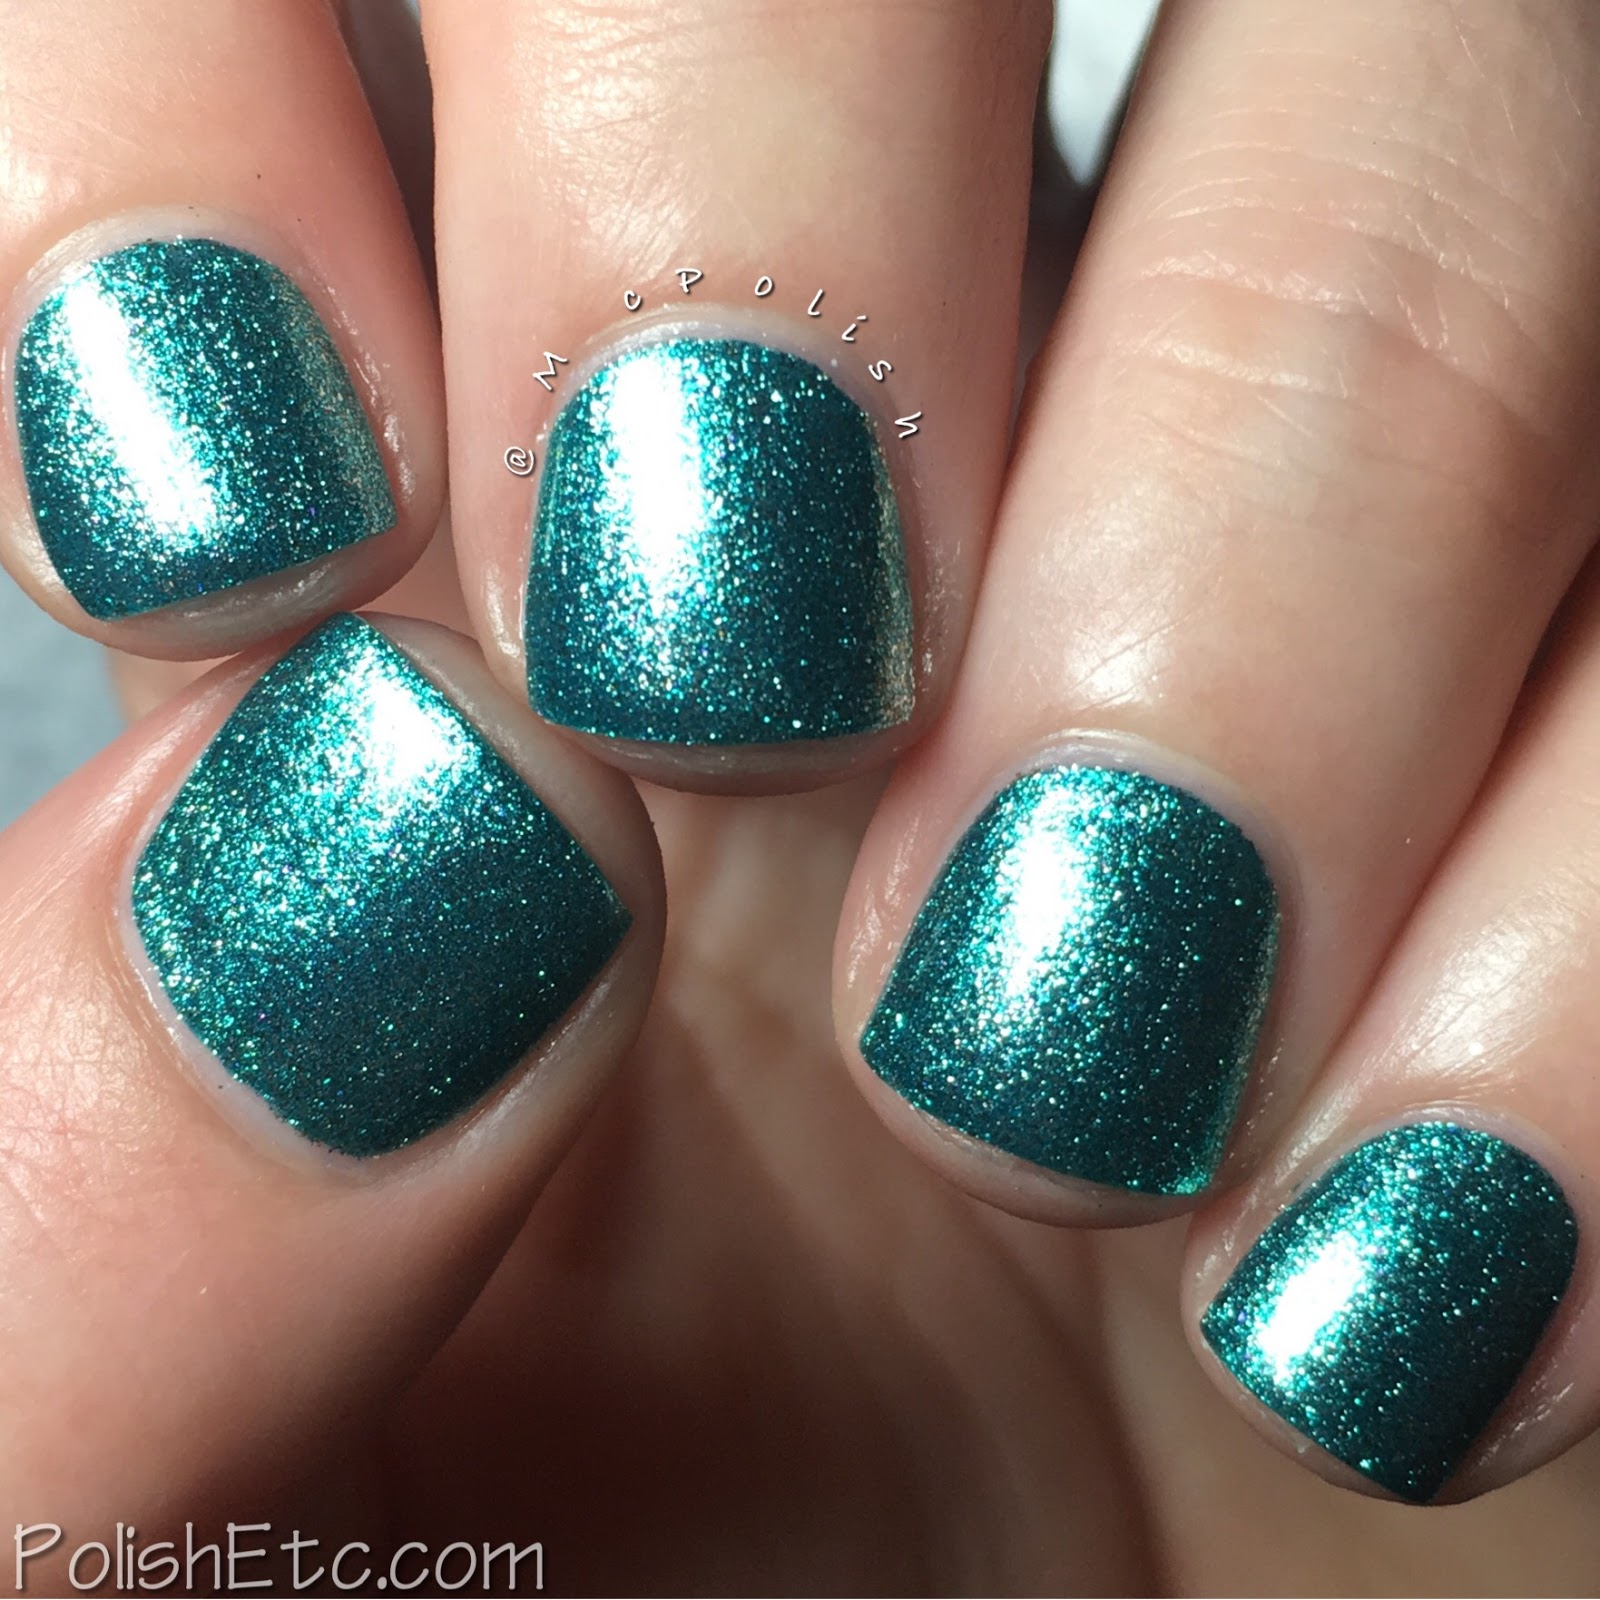 Pahlish - Life Aquatic Collection - McPolish - Team Zisou